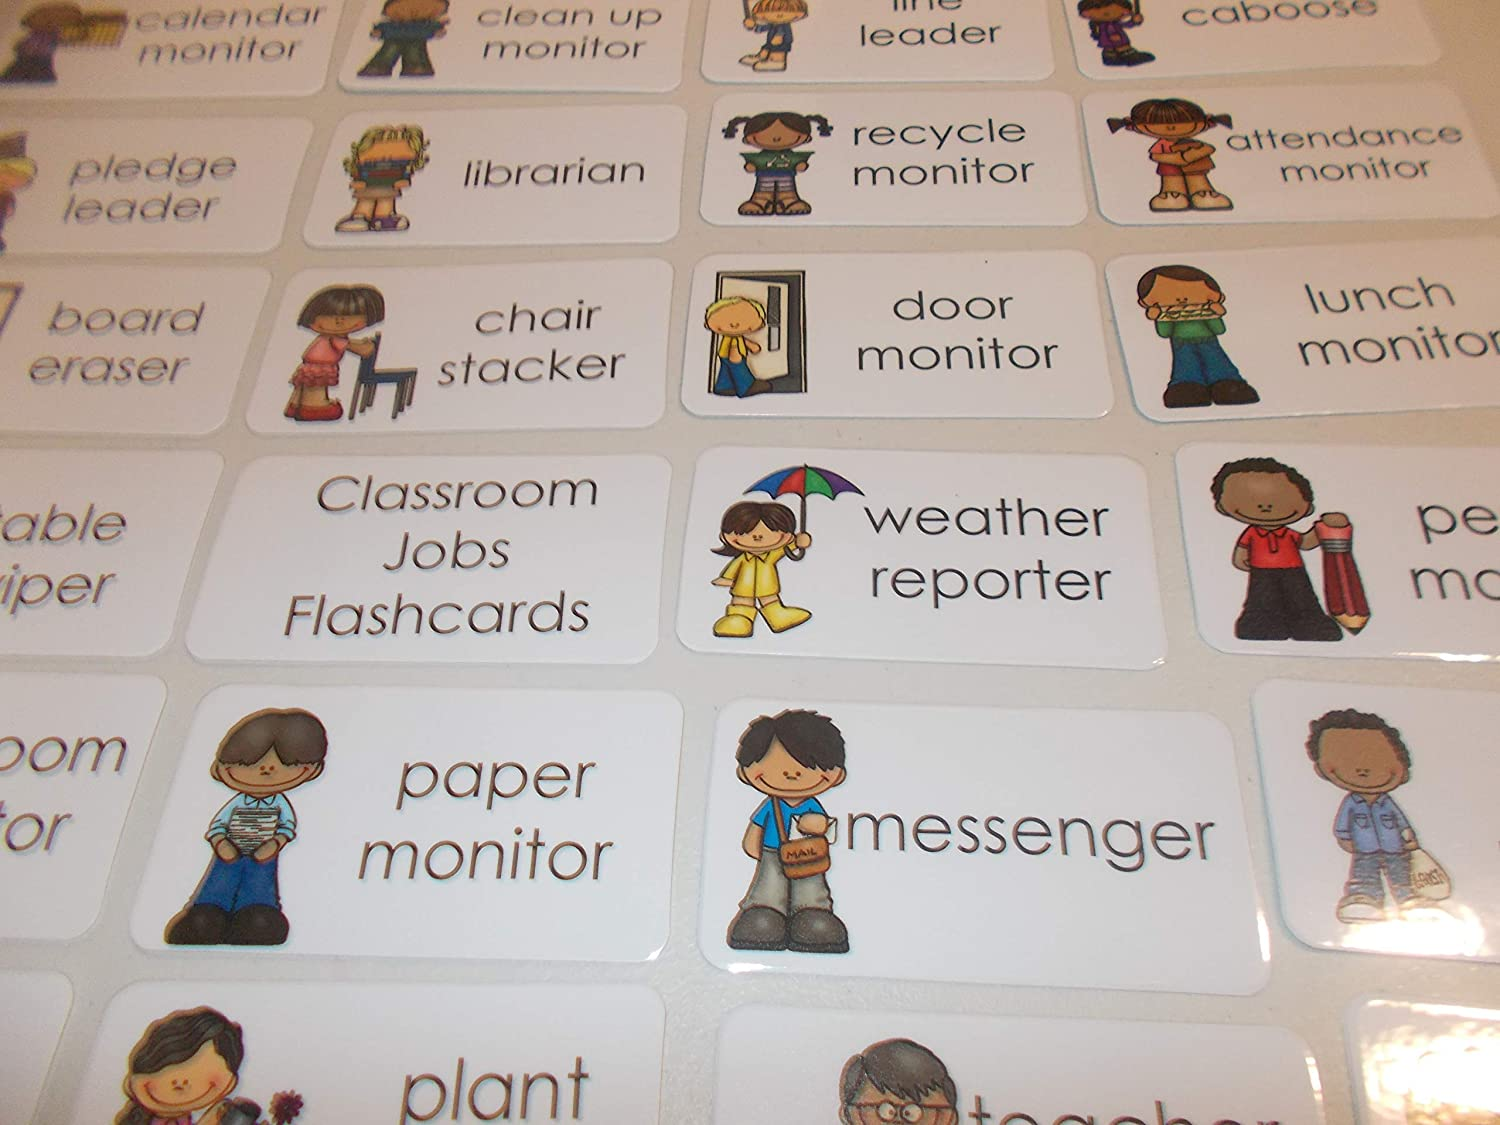 23 Laminated Classroom Jobs Flashcards. 81kRjp2BwioL